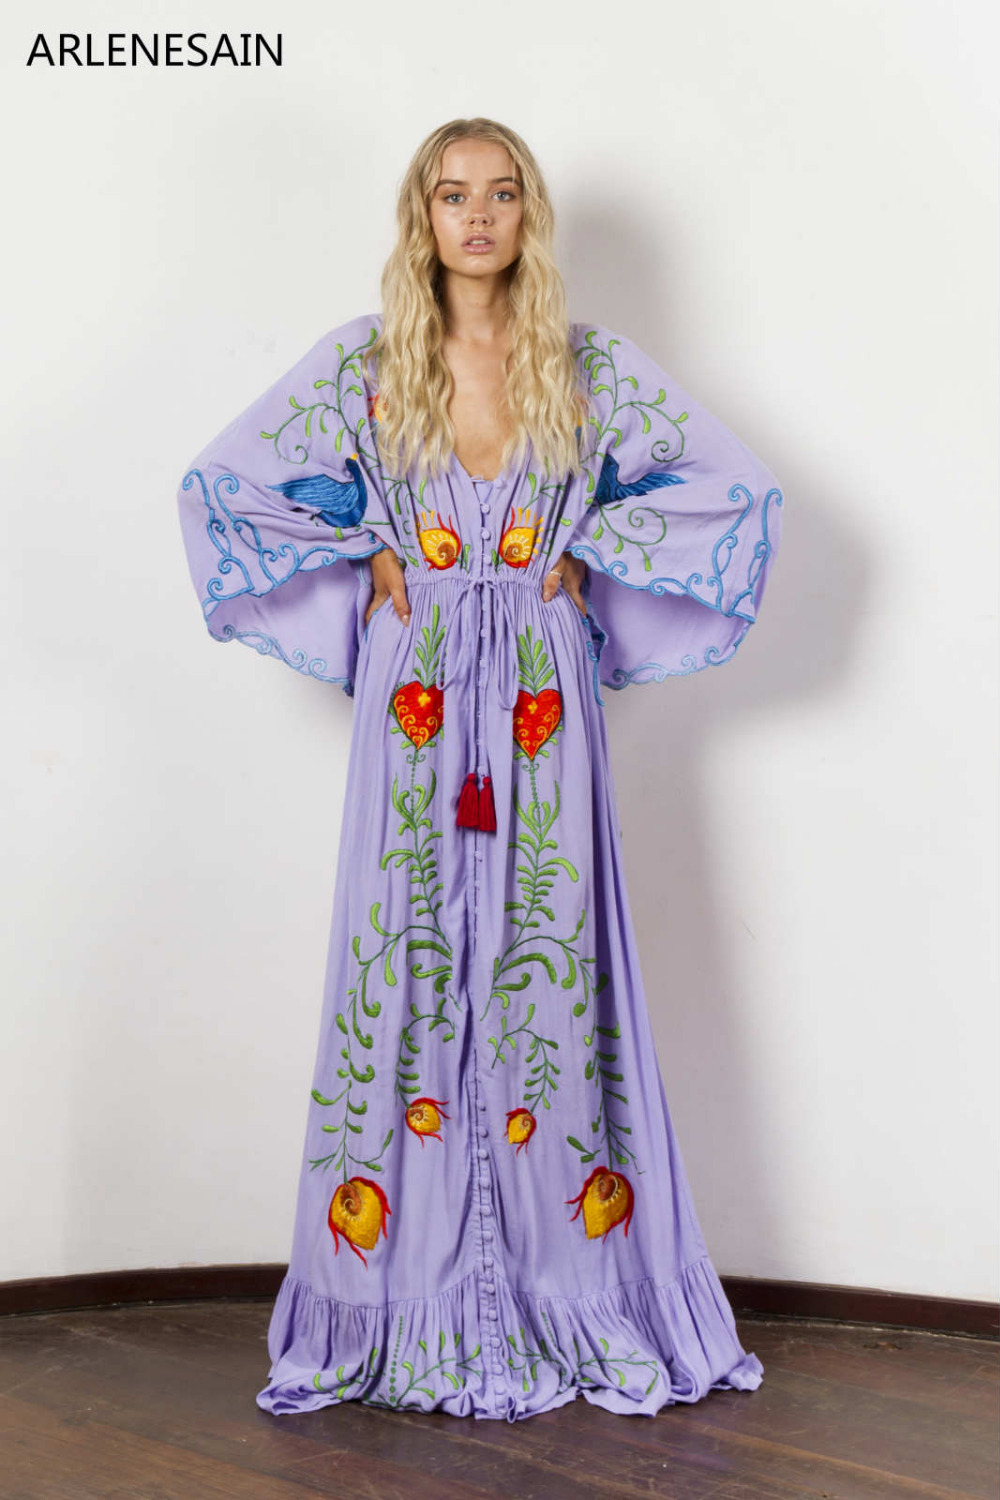 634f8d5936a Arlenesain custom 2018 Women Instagram Fashion Women s duster with cut work  vibrant embroidery Maxi Dress